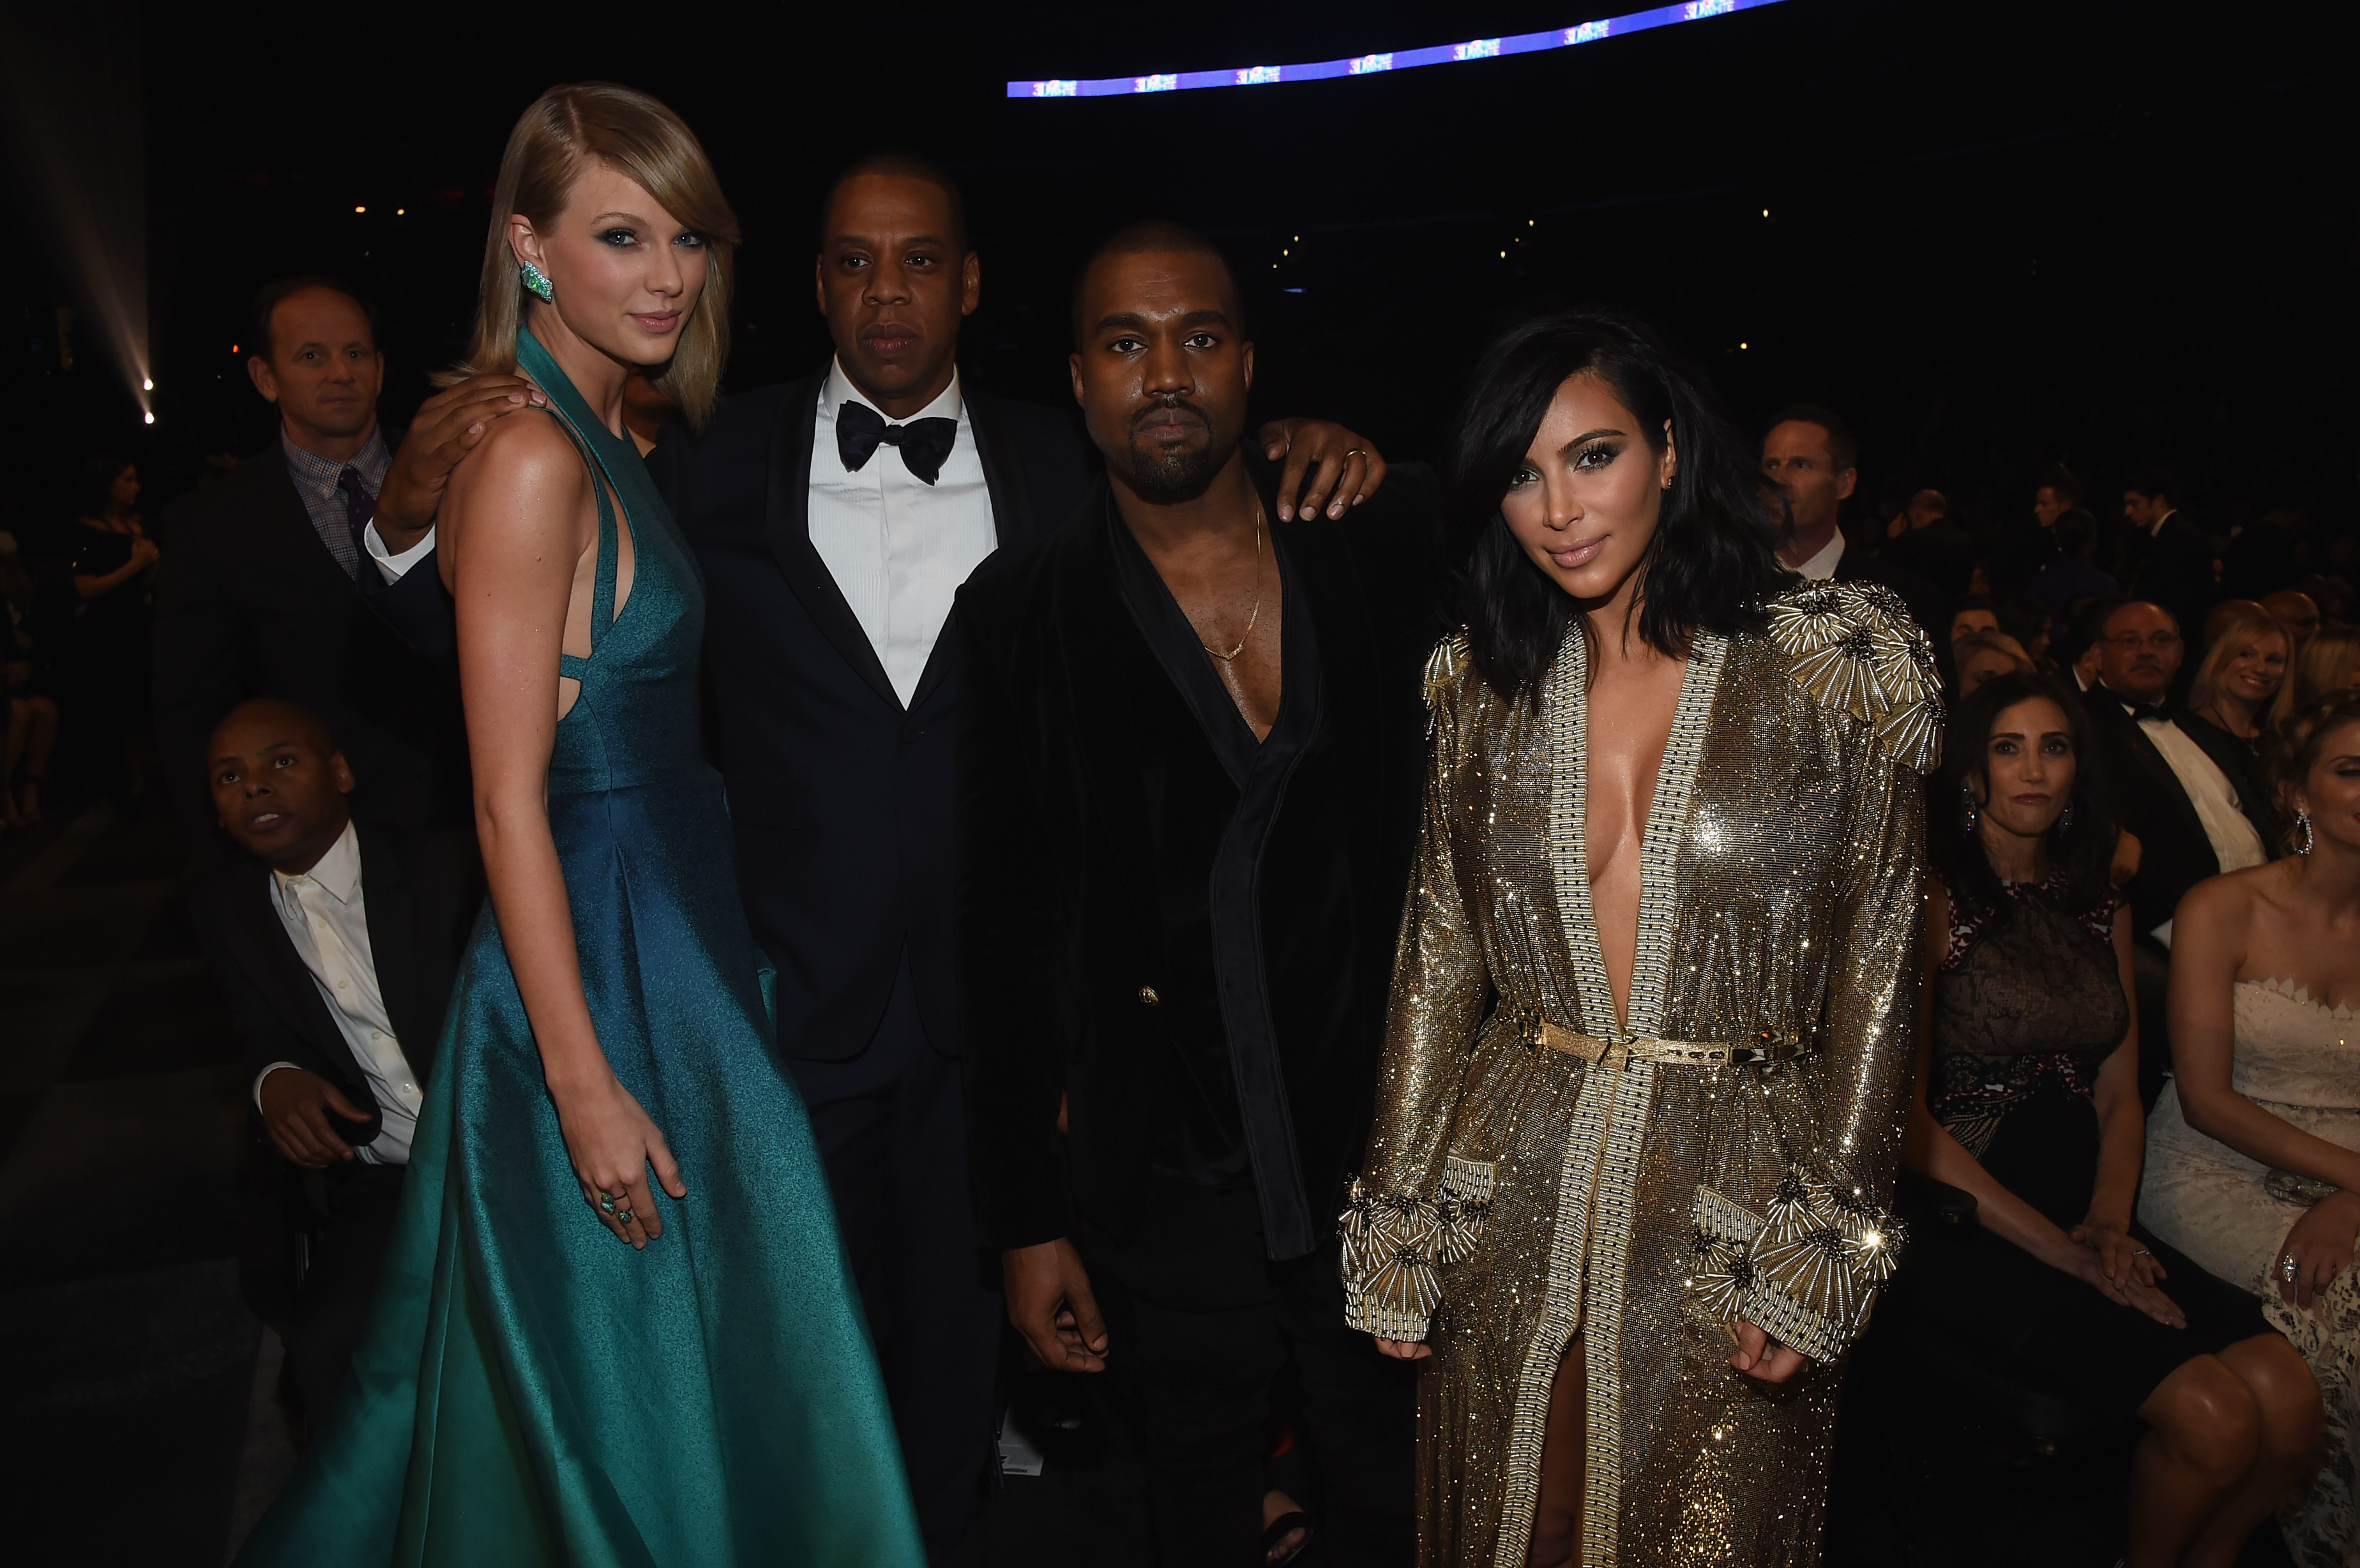 The Kanye West Taylor Swift Feud Has Just Got A Whole Lot Worse GettyImages 463036118